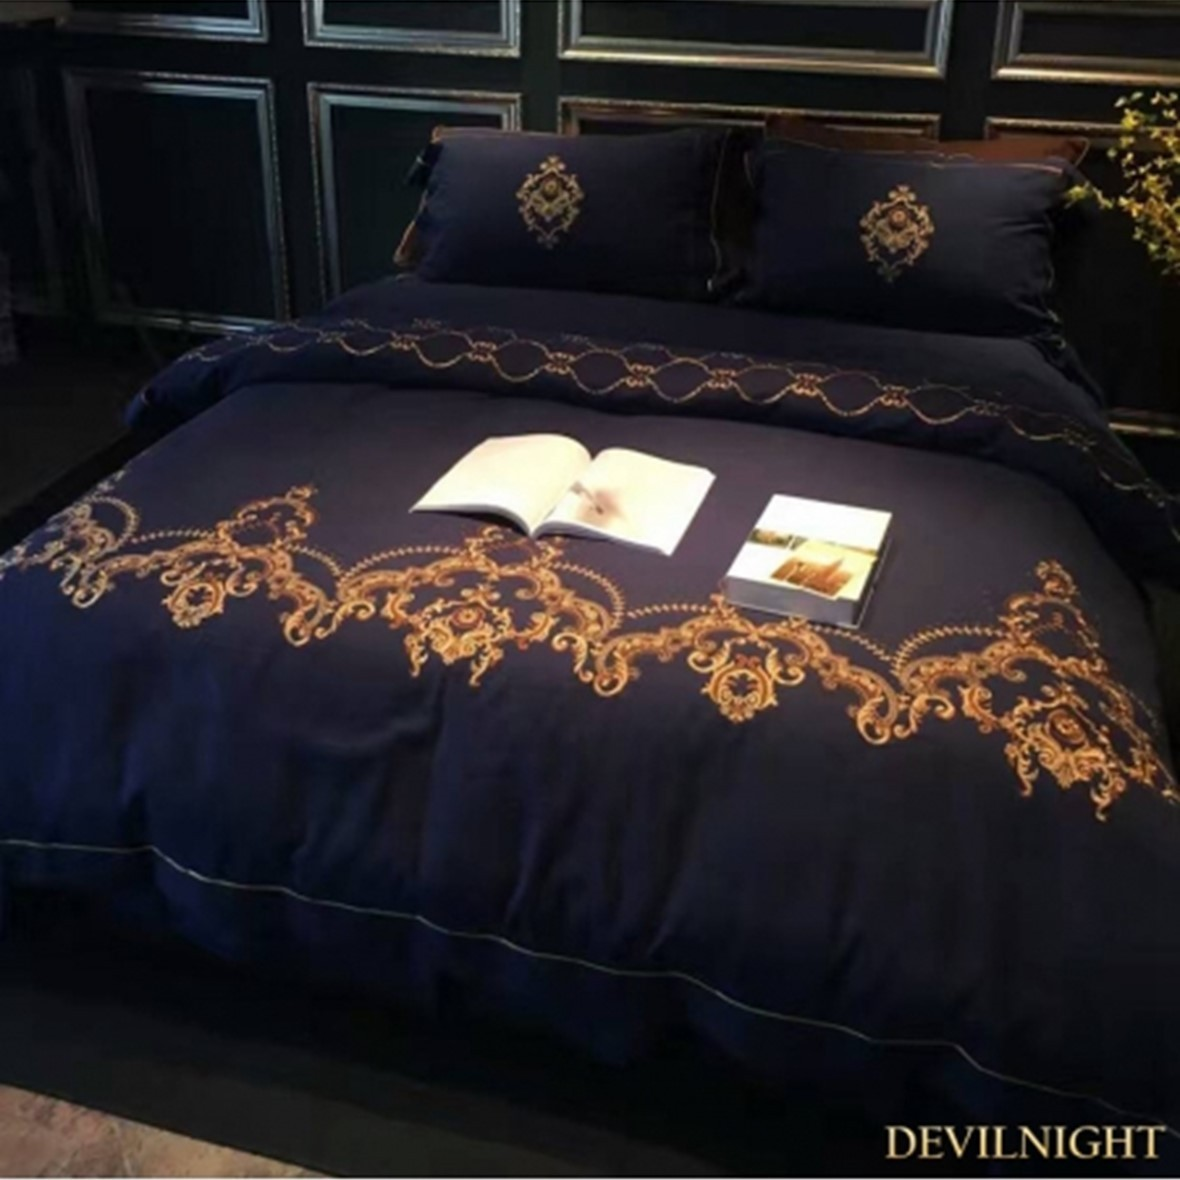 ◆DevilNight◆BLUE GOTHIC VINTAGE PALACE EMBROIDERY - 6p